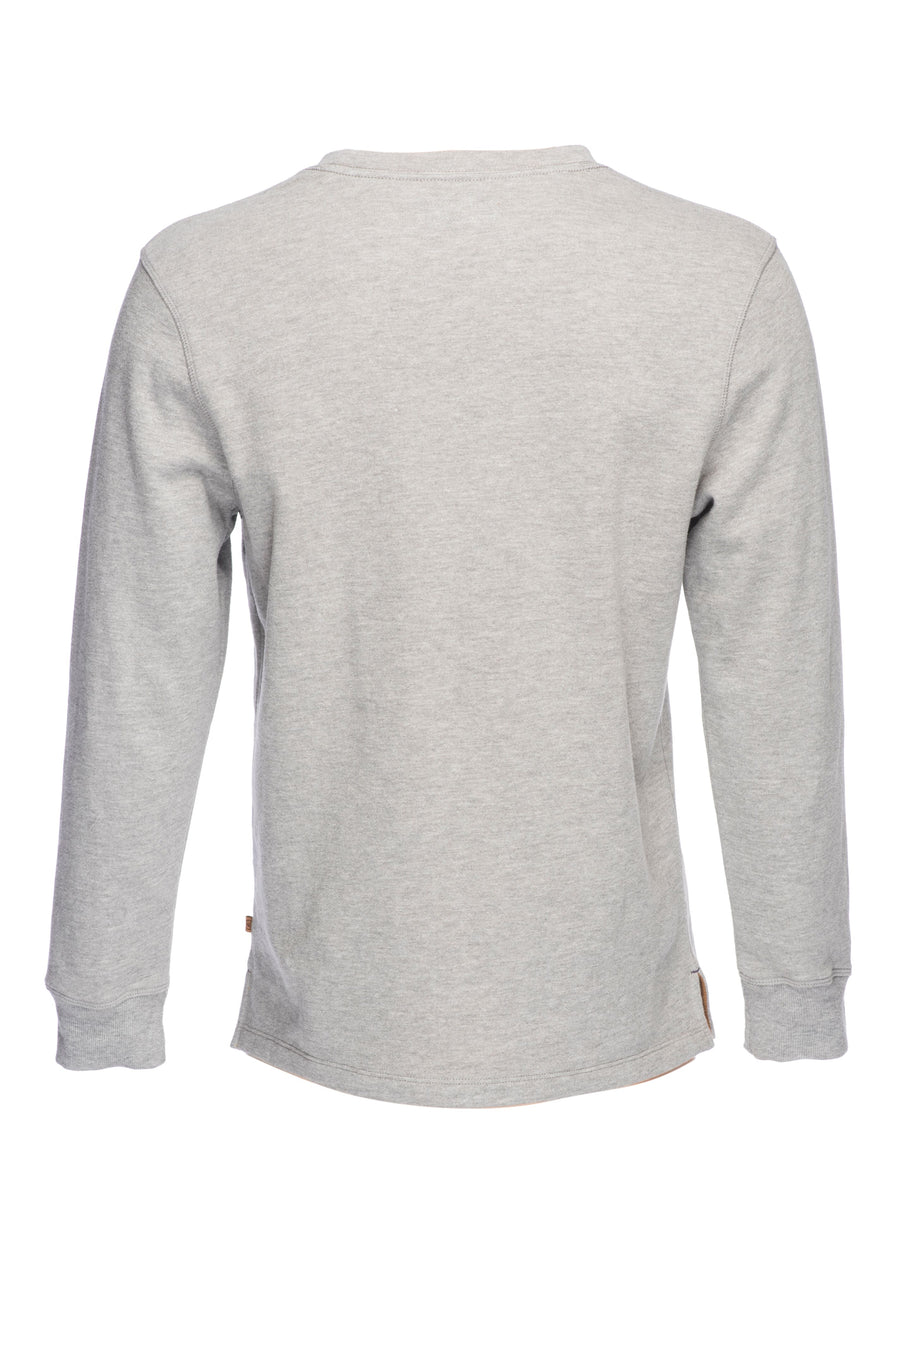 Benjamin Burnout Crew Neck Pull Over - Heather Gray